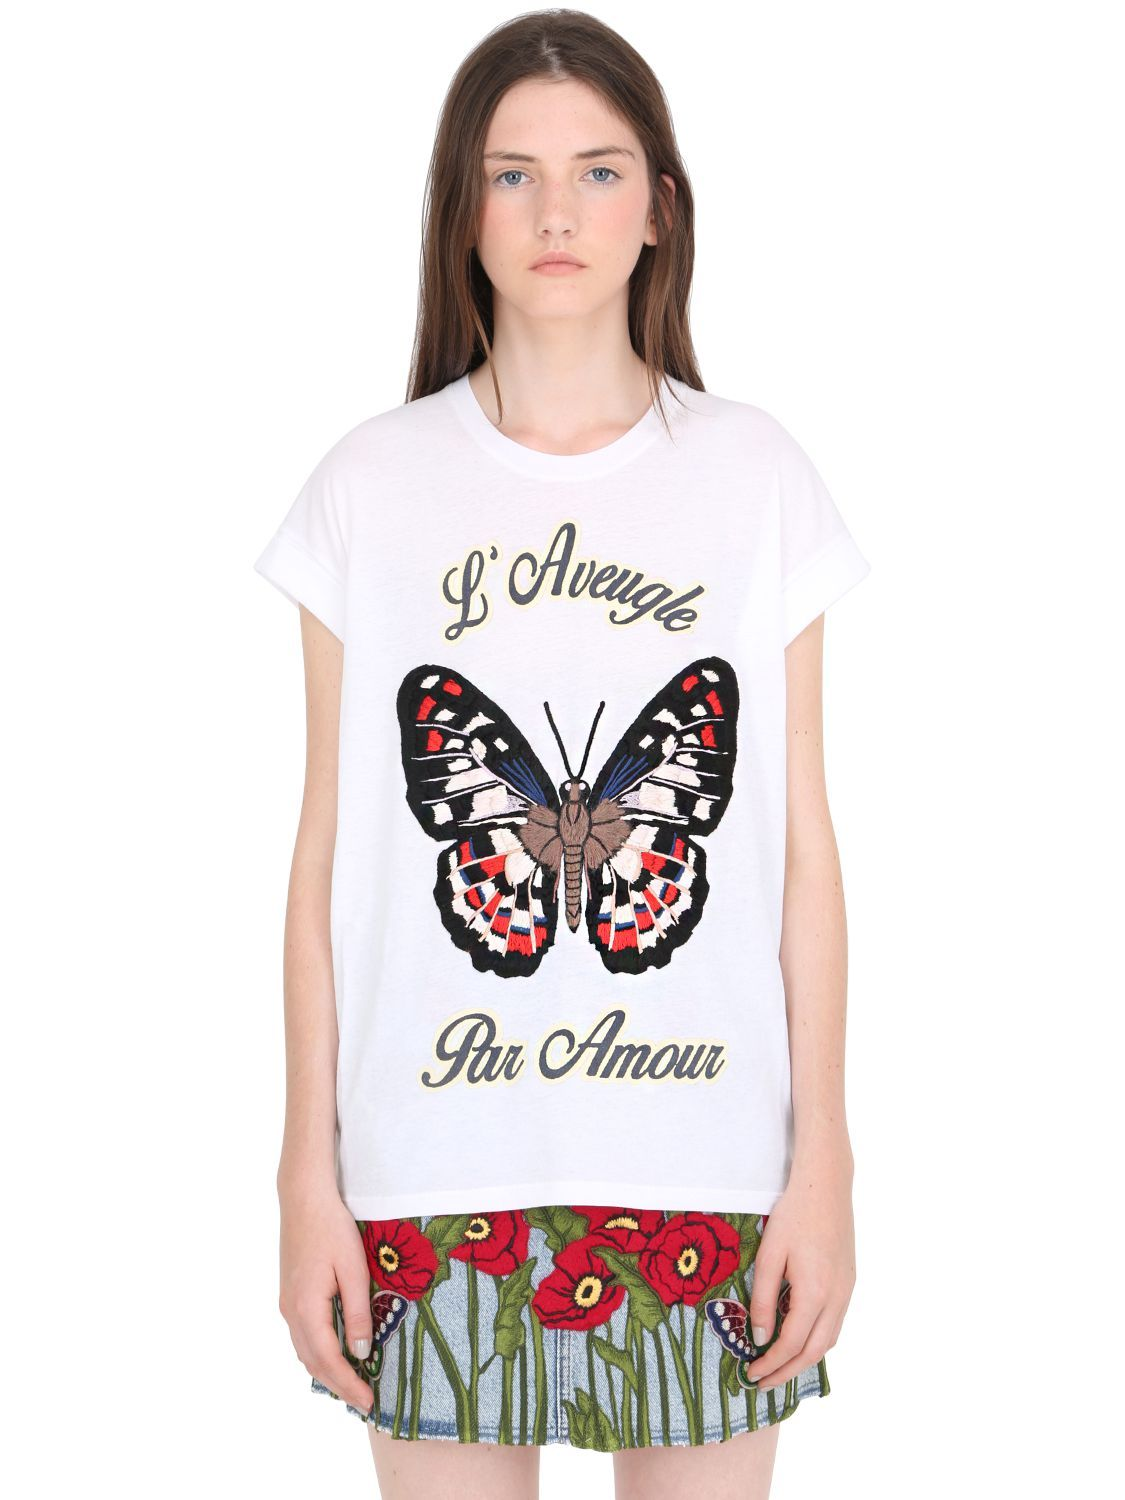 f94d7ad0773b gucci belt sale selfridges, GUCCI BUTTERFLY EMBROIDERED JERSEY T-SHIRT  WHITE OTIzMA2 WOMEN CLOTHING